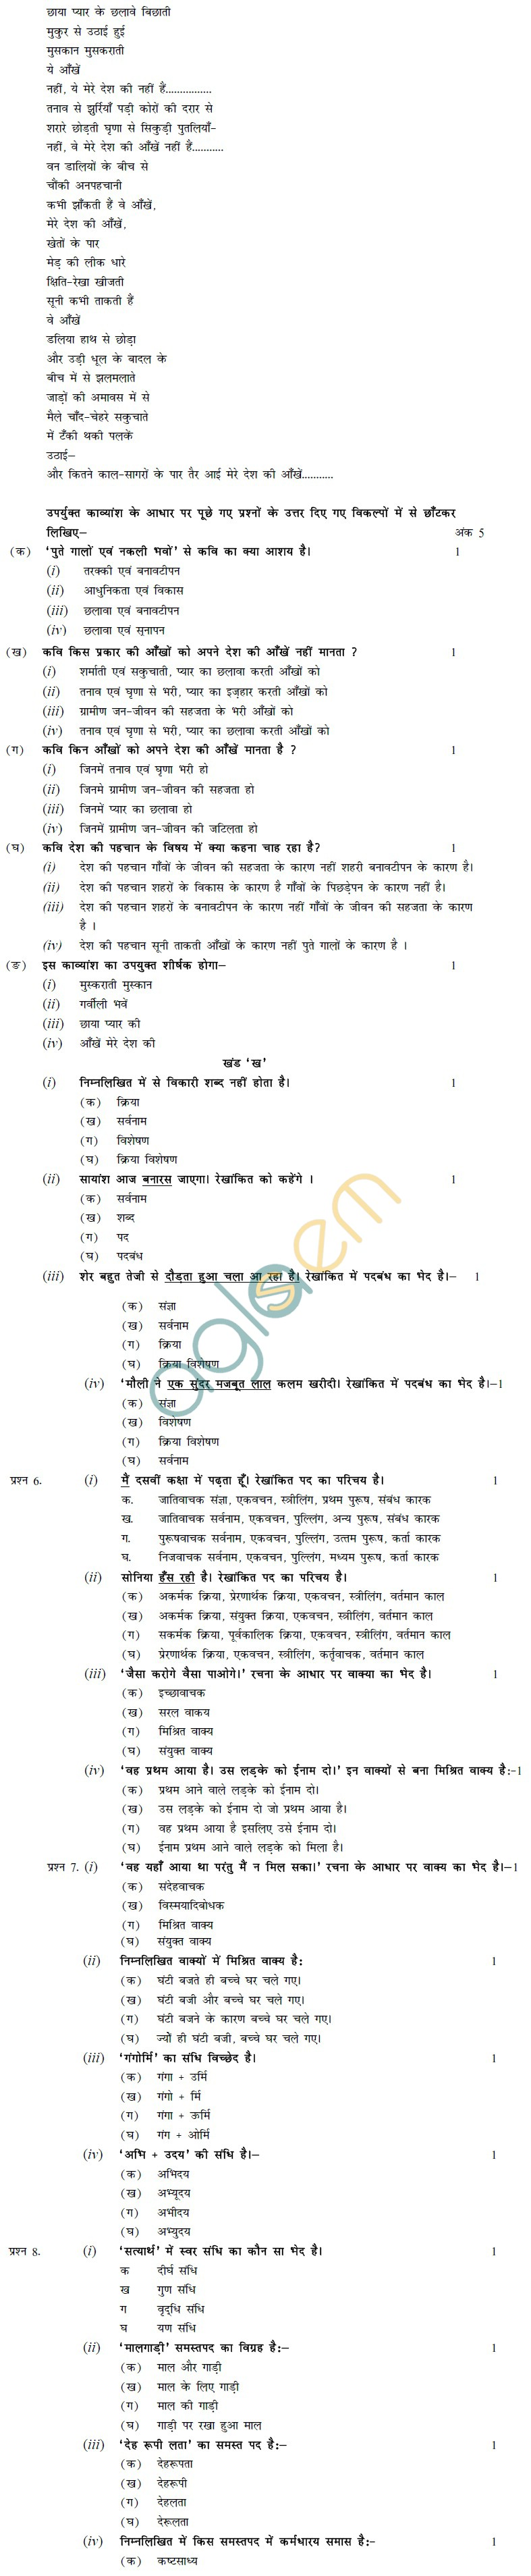 CBSE Board Exam 2013 Sample Papers (SA1) Class X - Hindi B